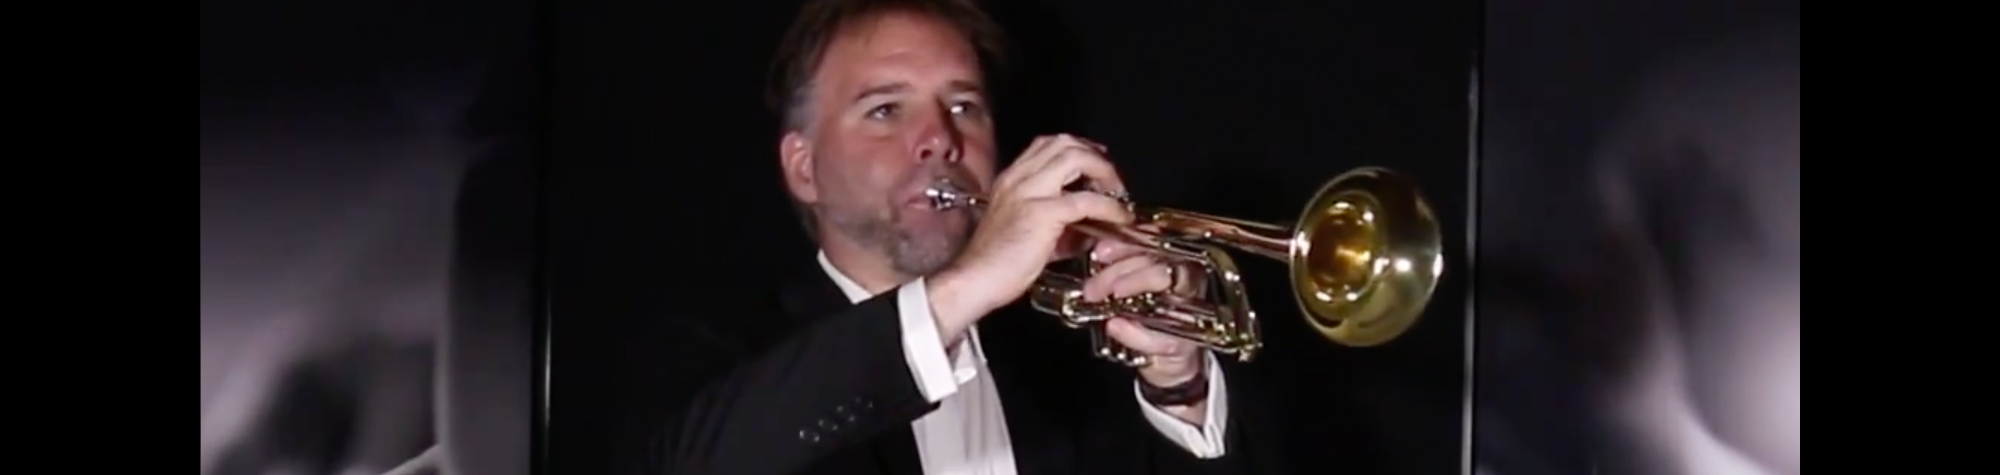 Philippe Schartz Trumpet Interview – The Other Side of the Bell #91